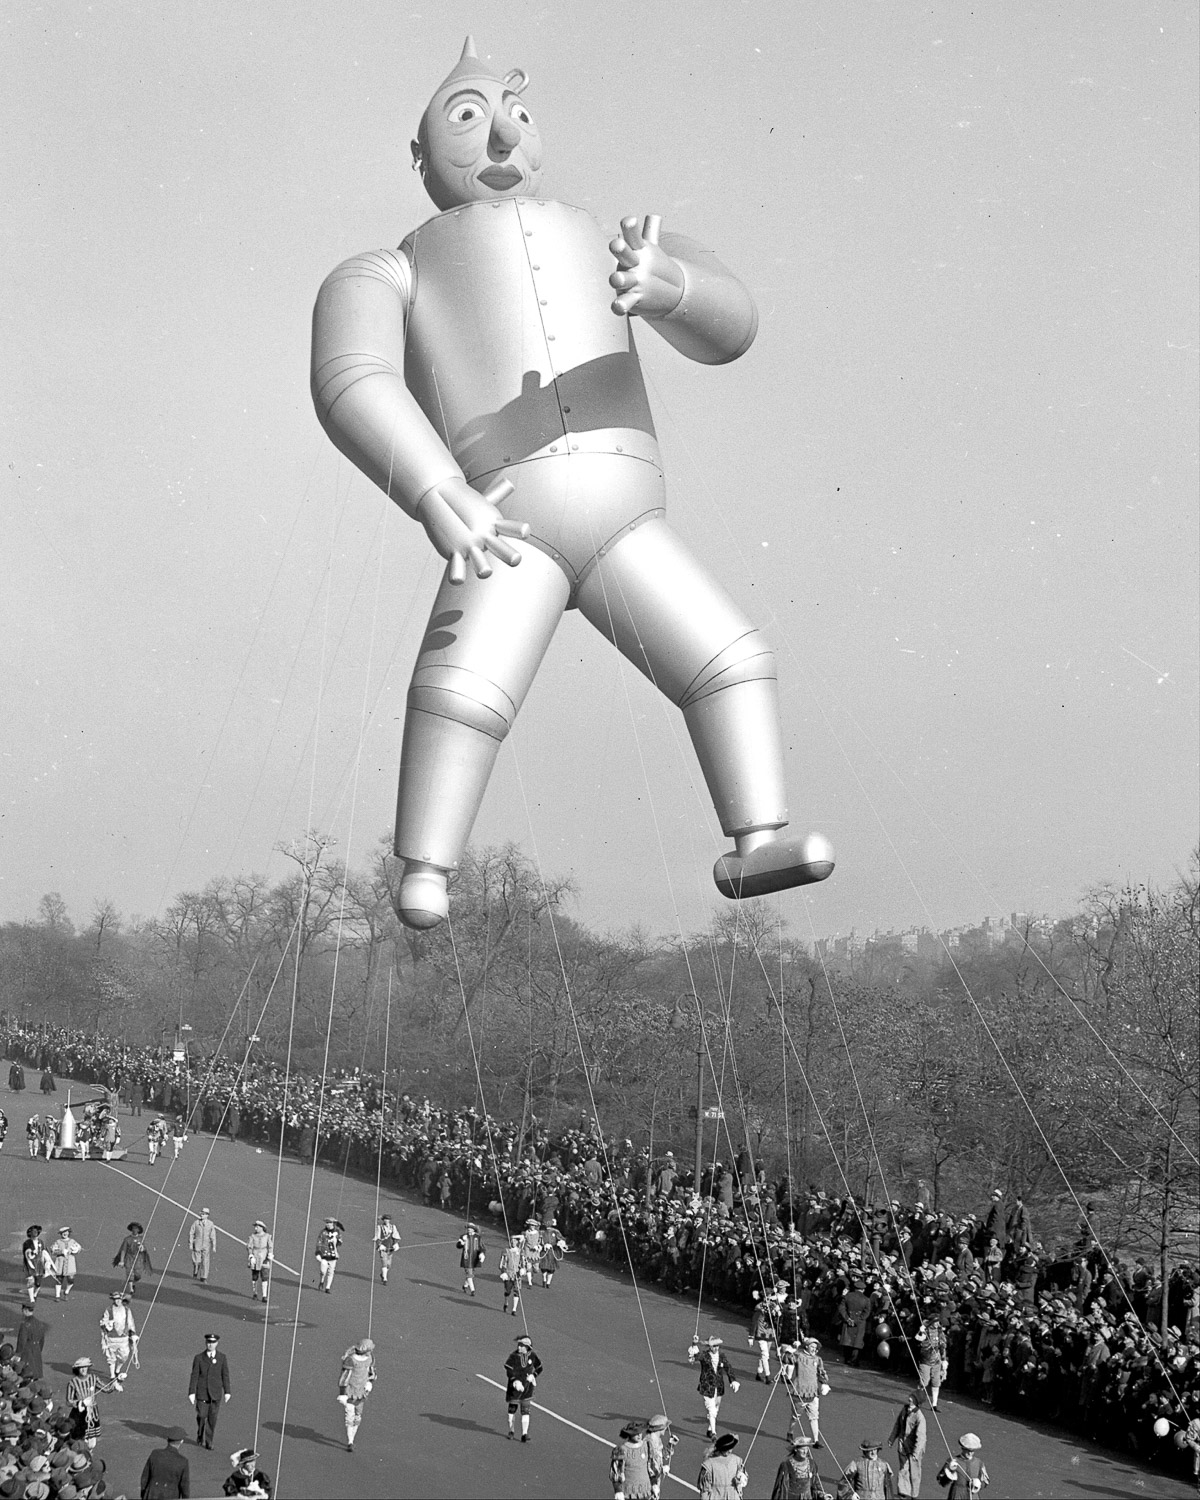 The Tin Man flies high in the Macy's Thanksgiving Day parade